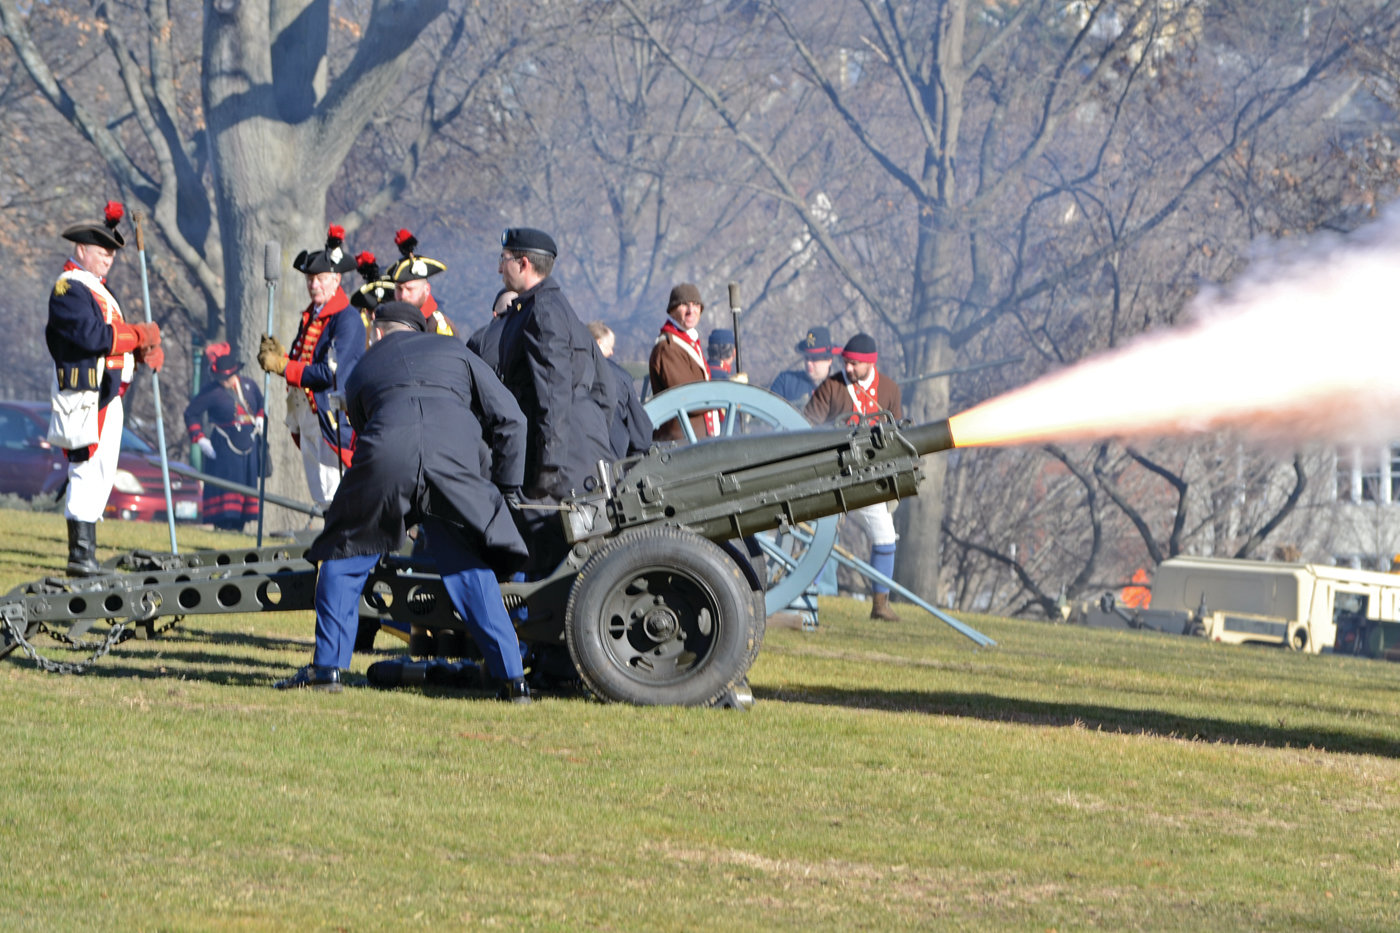 SHOTS VOLLEYED: A 19-gun salute fired off by the Rhode Island Militia and National Guard caused nearby car alarms to sound off, but provided excitement.